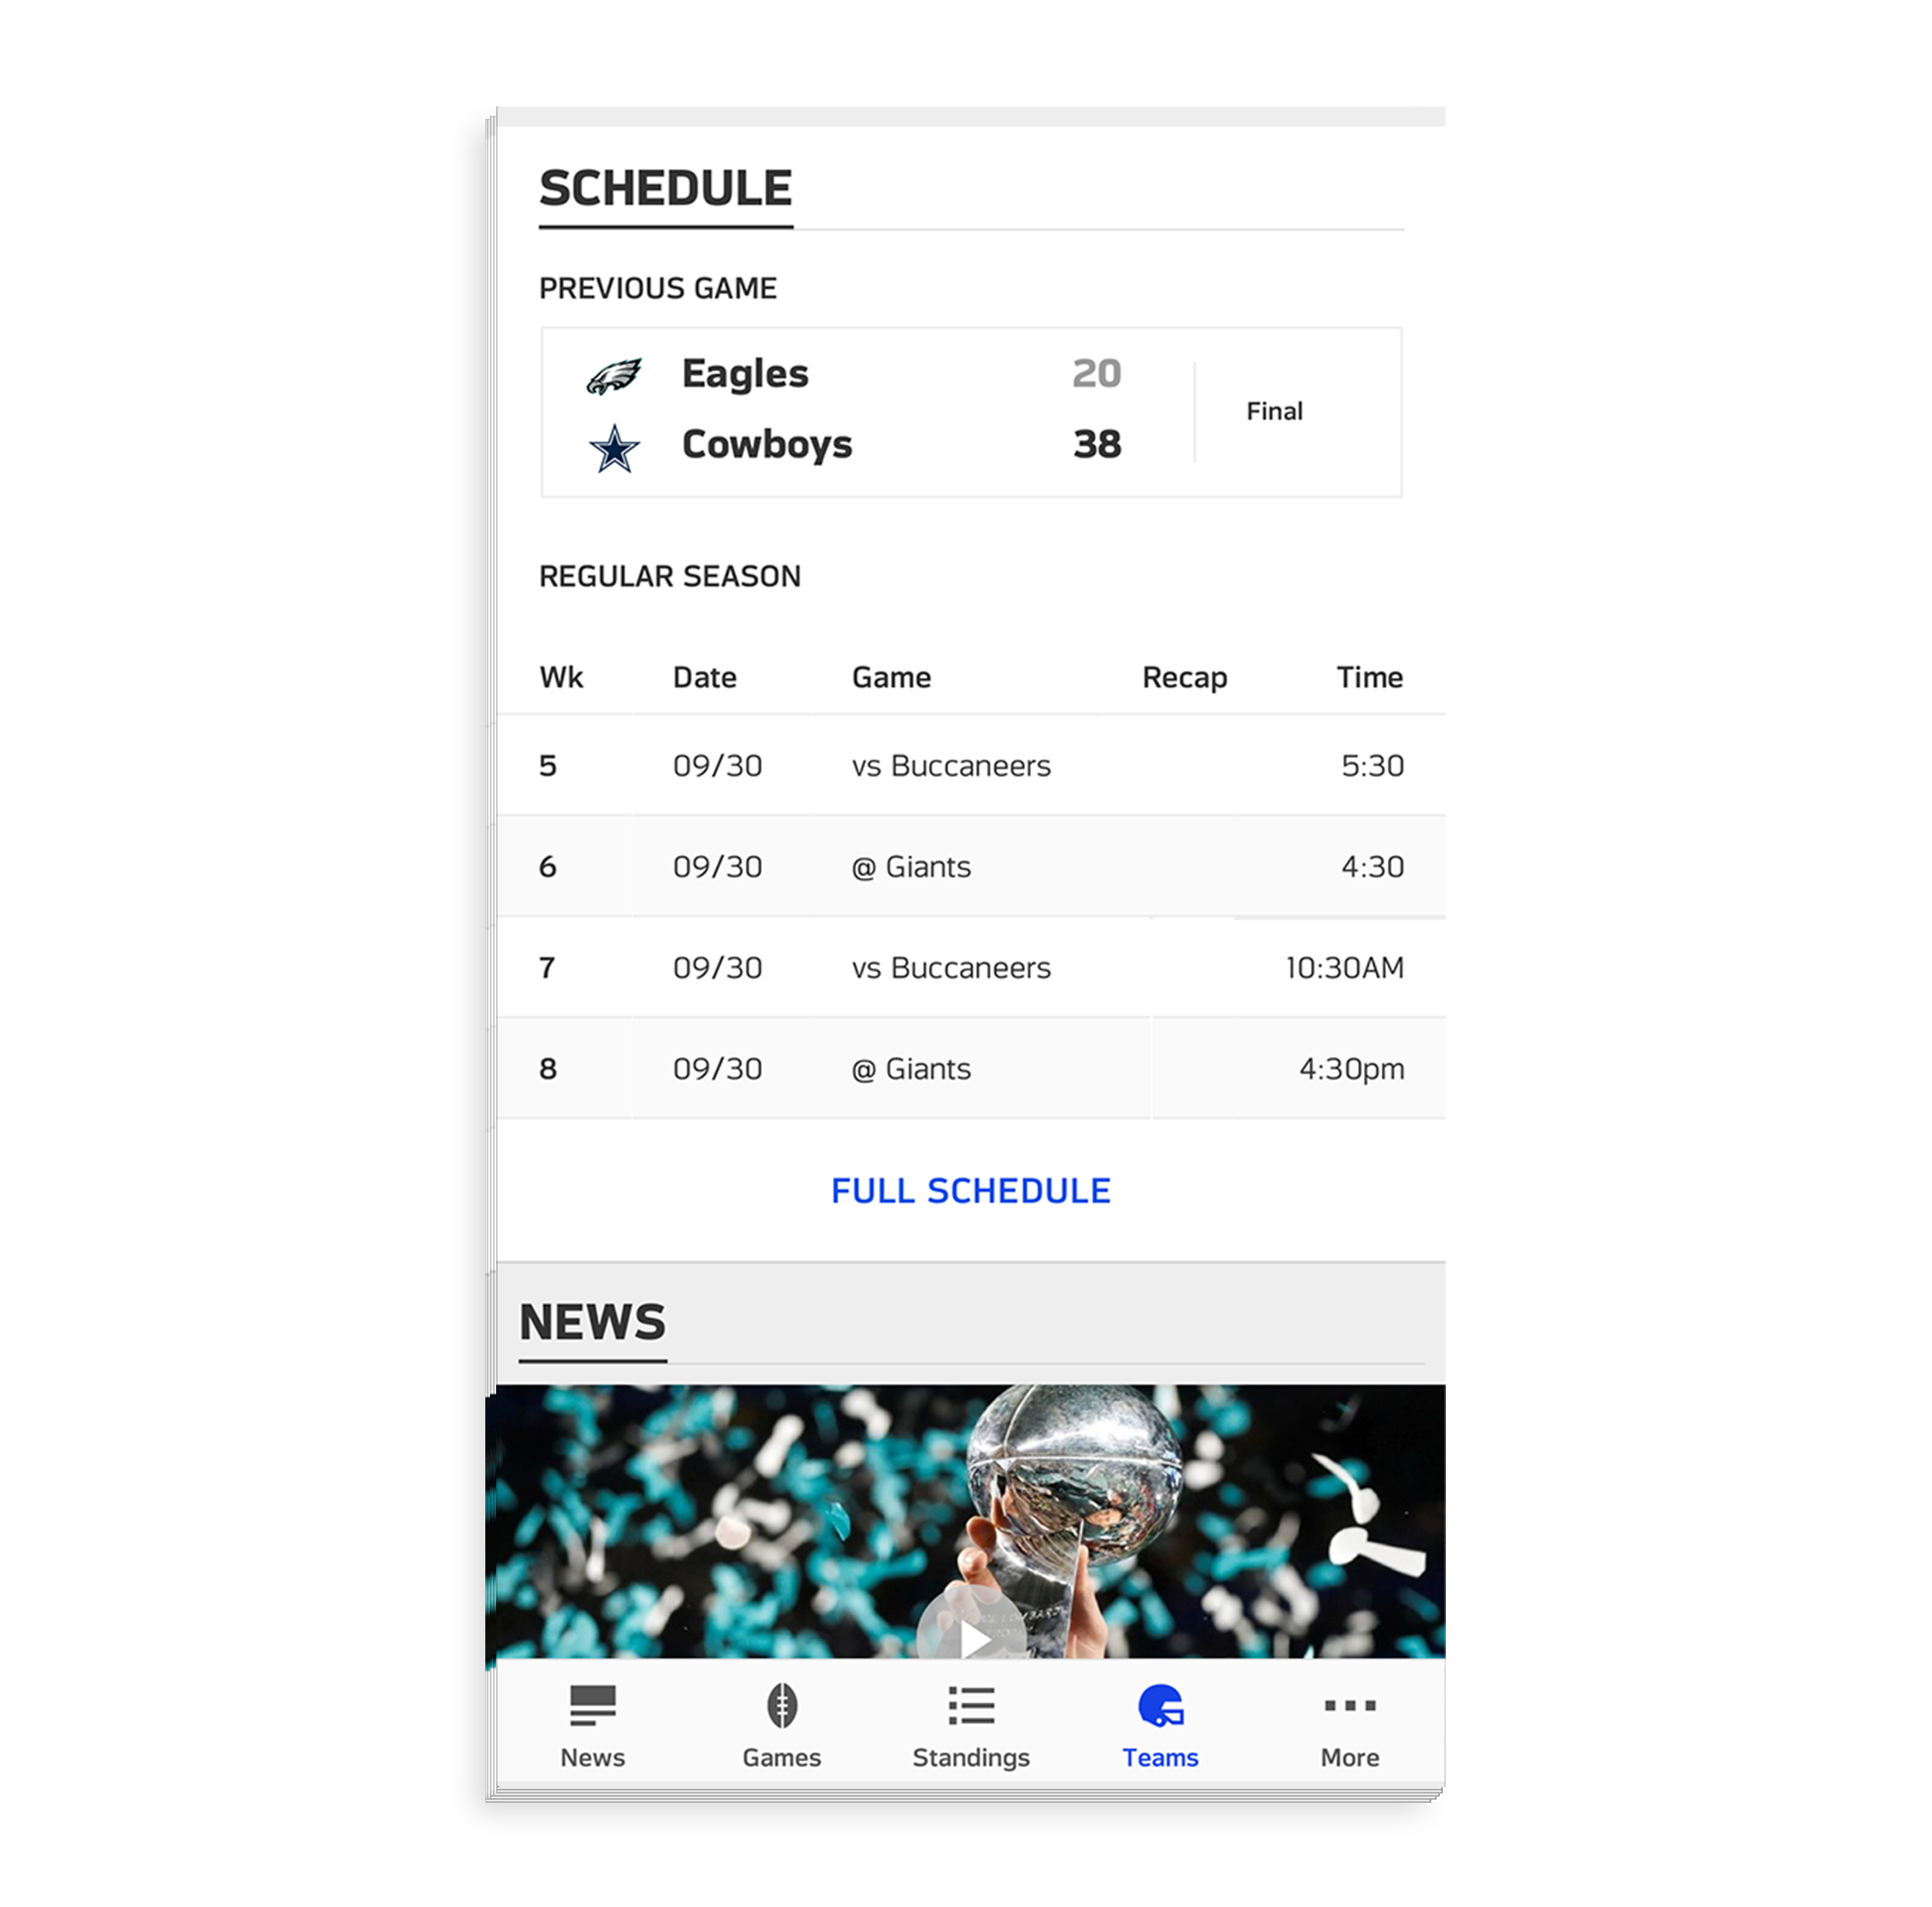 - The most common information that users seek is the team's schedule, so we displayed it as the second content block of the page with a card attached showing the latest matchup.